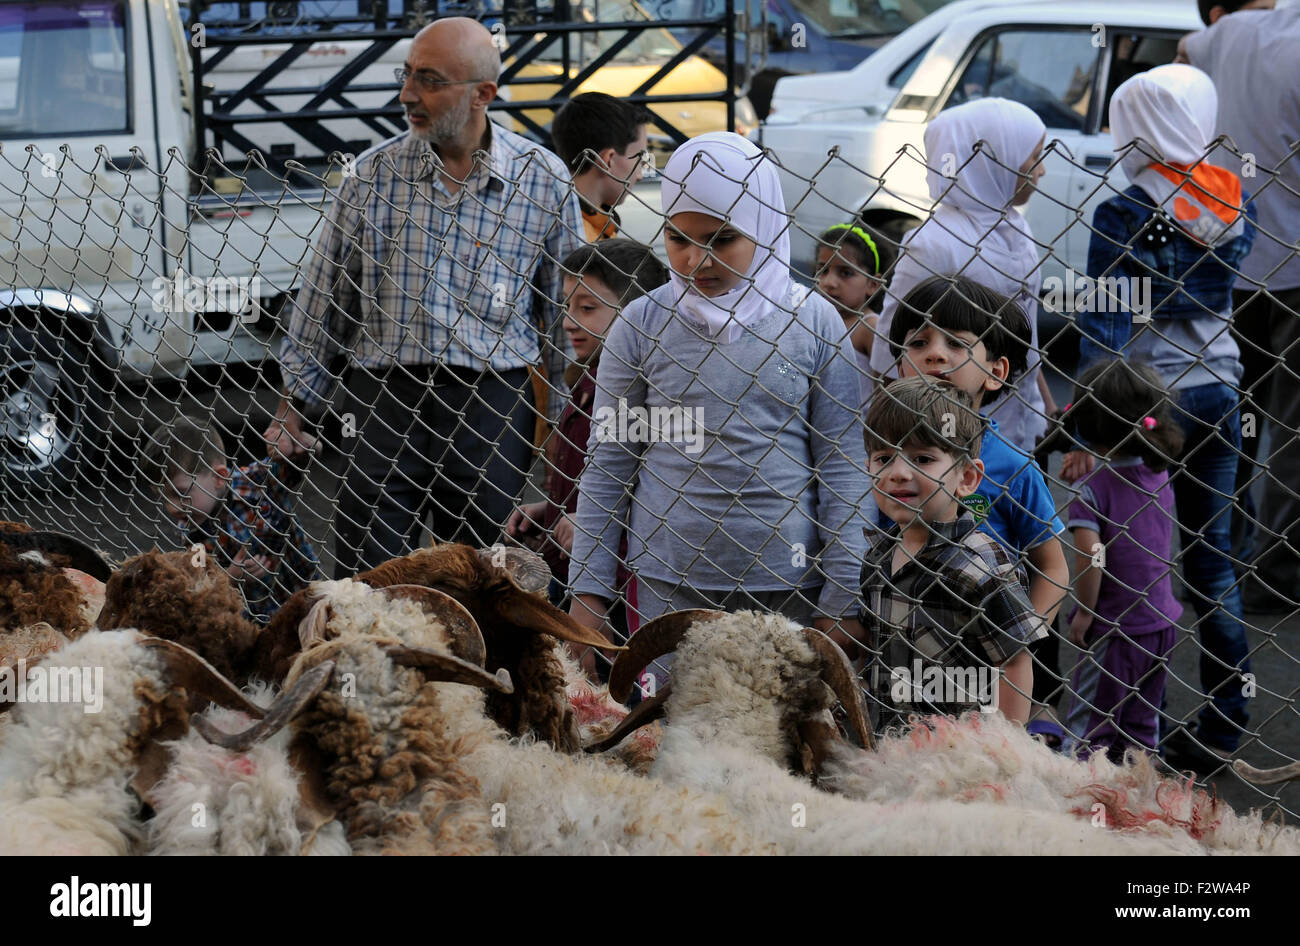 (150924) -- DAMASCUS, Sept. 24, 2015 (Xinhua) -- Children look at sheep for sale in Damascus, Syria, on Sept. 24, - Stock Image